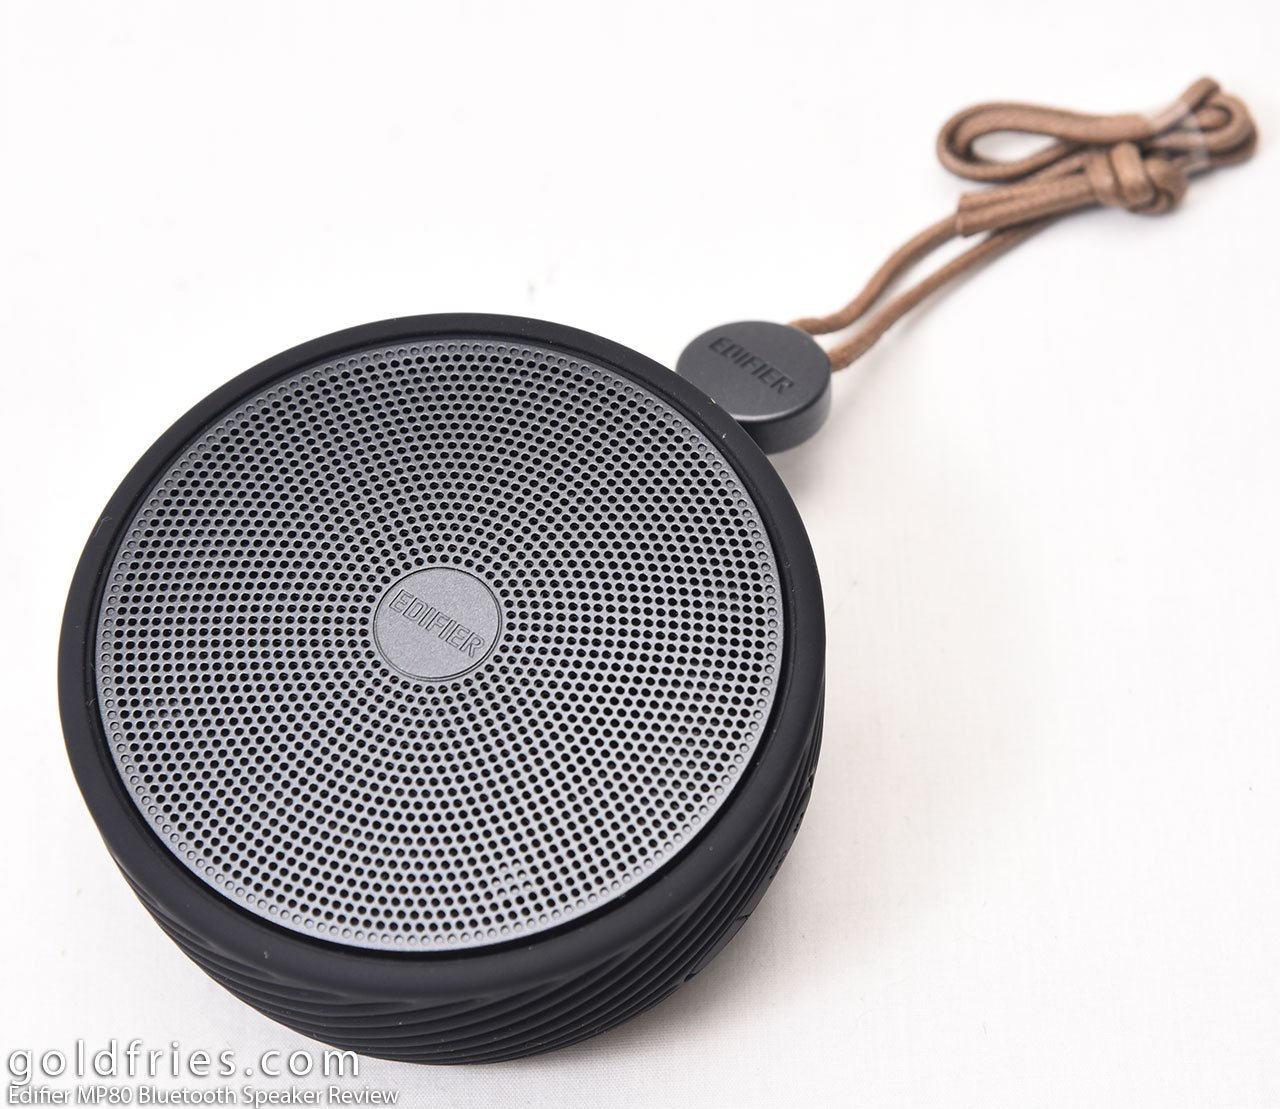 Edifier MP80 Bluetooth Speaker Review